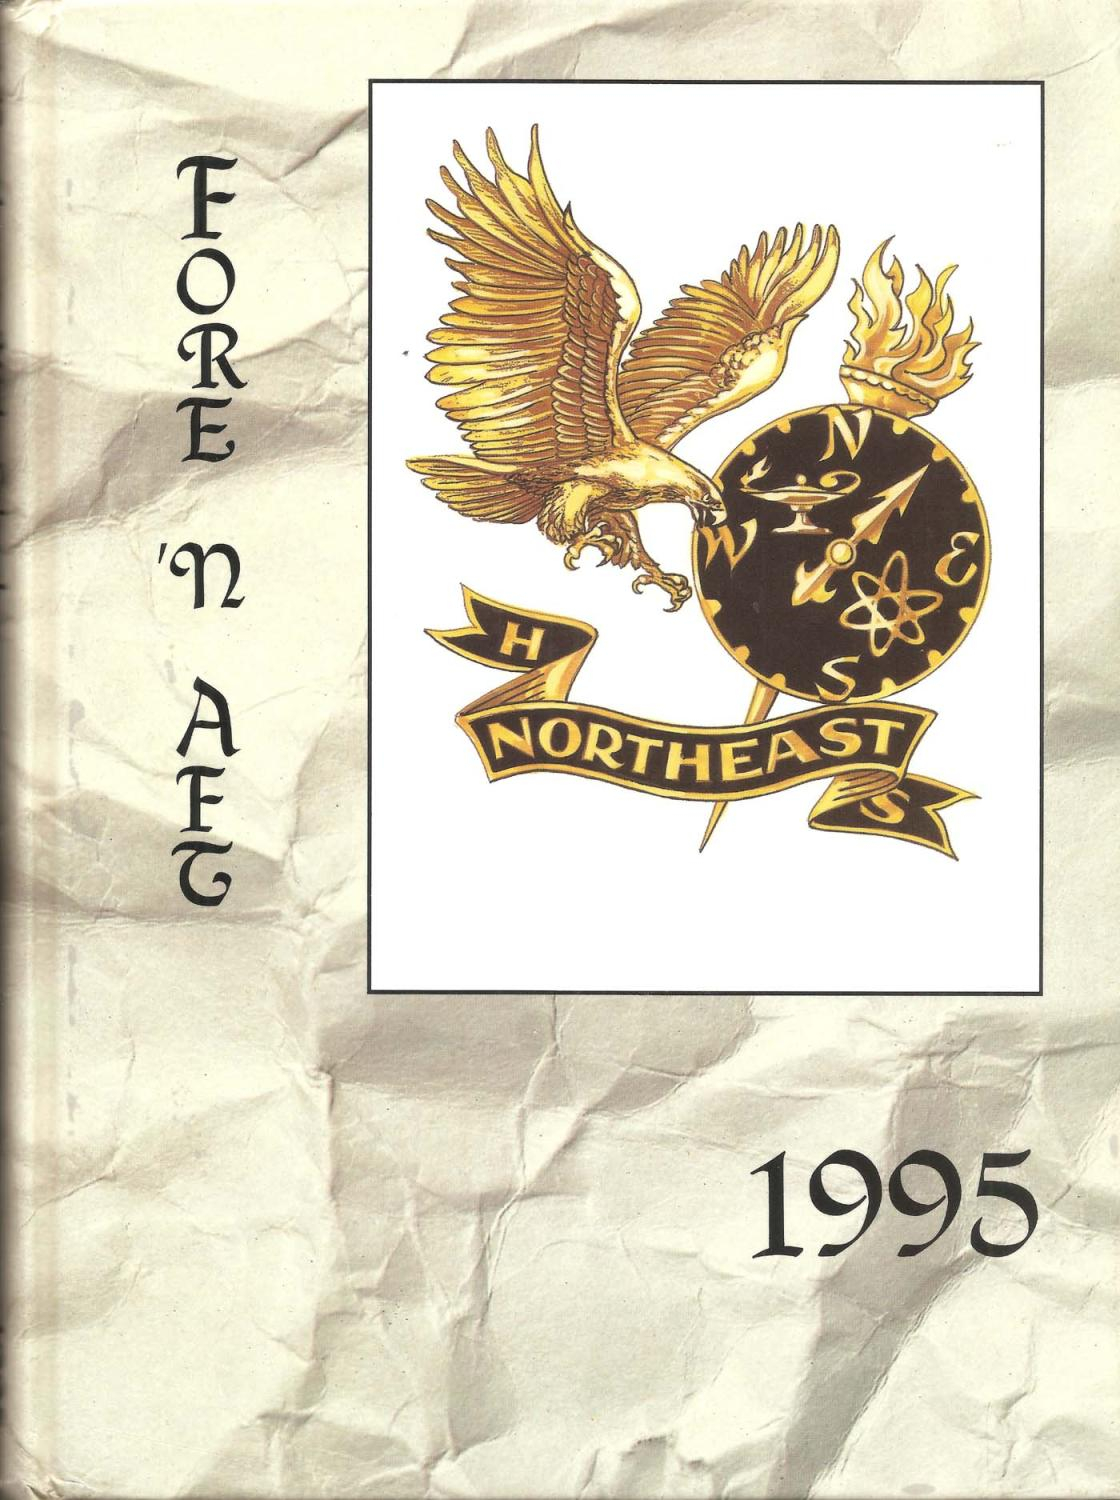 North East High School Yearbook 1995 Pasadena Md Fore N Aft By